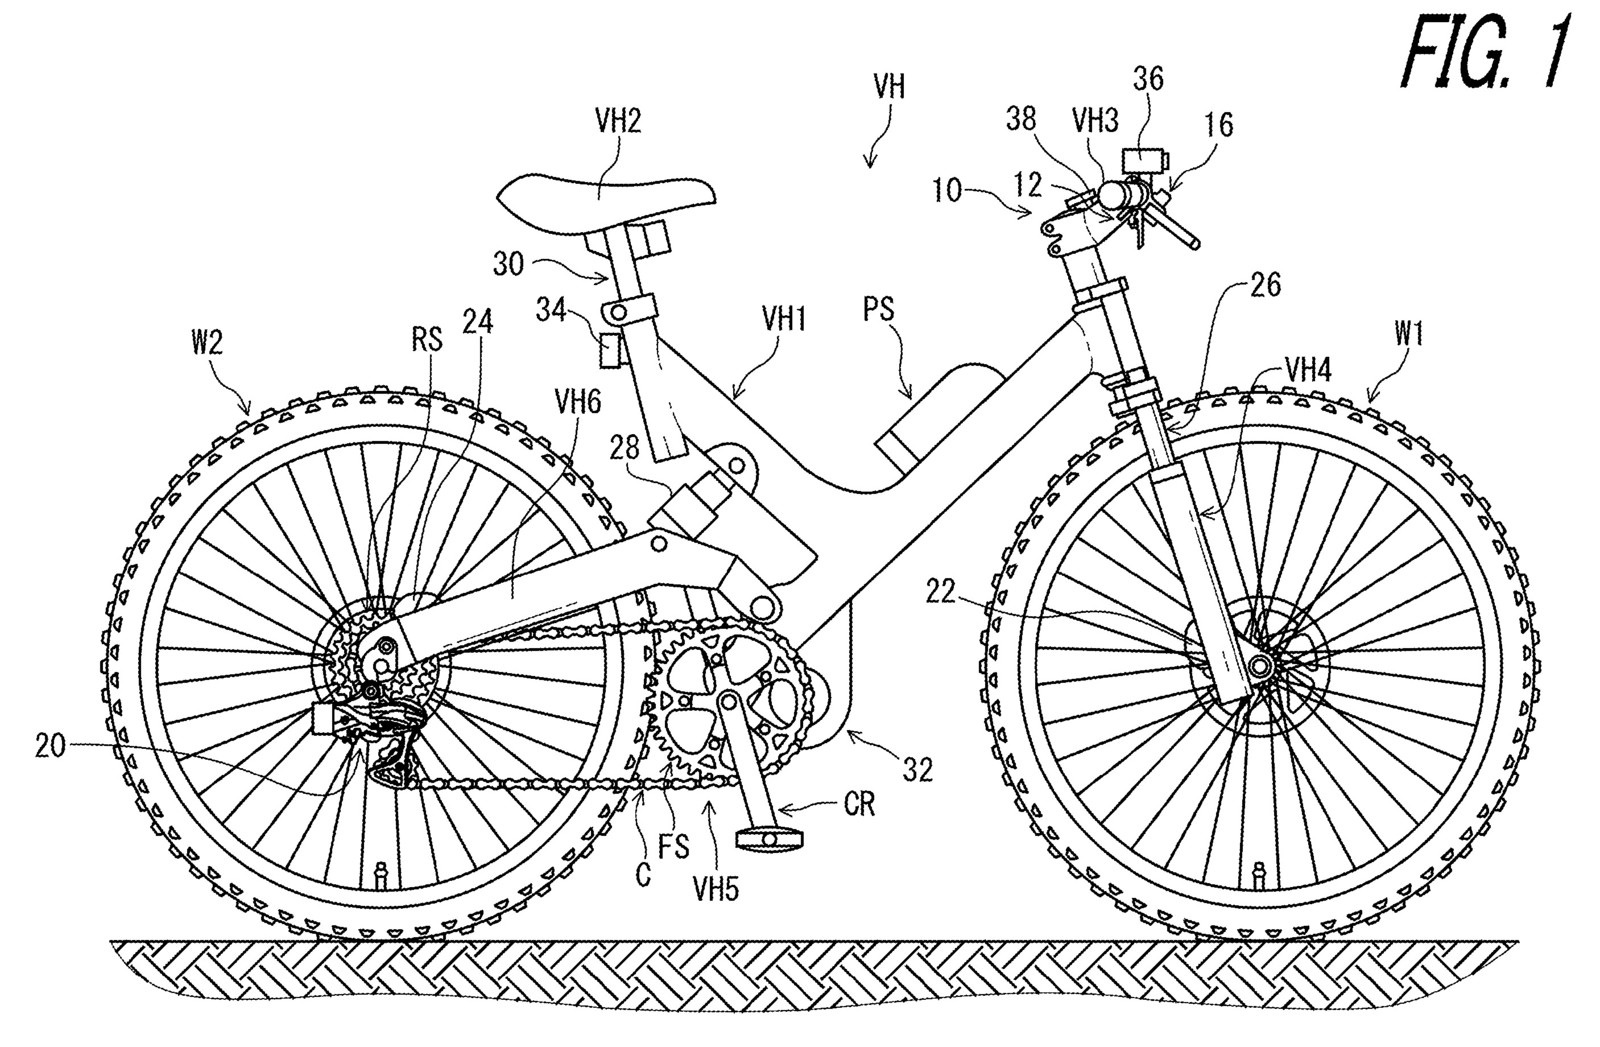 For some unknown reason Shimano are still using a bike from 1998 for their patent filings.